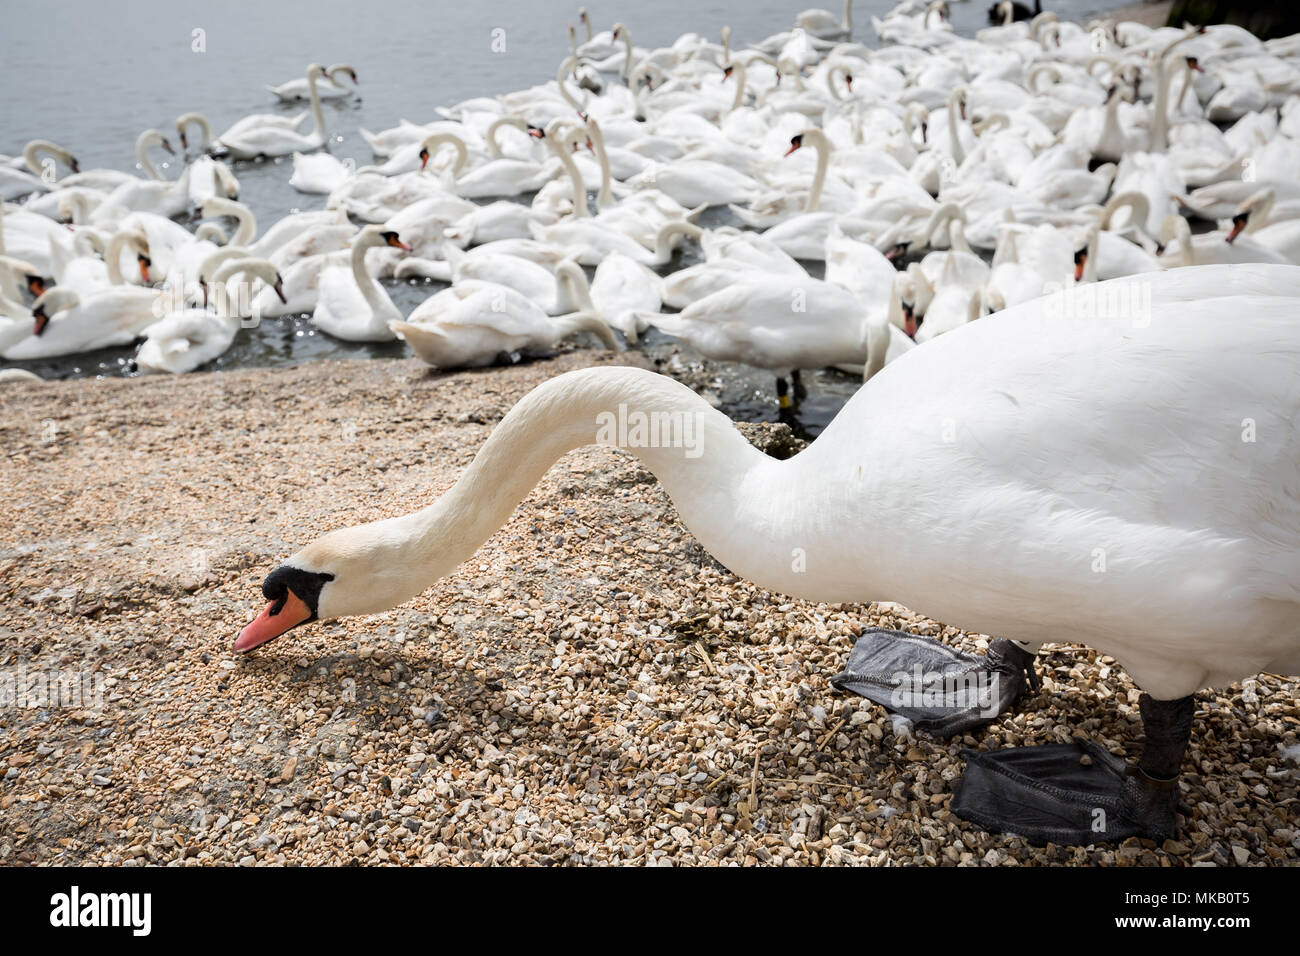 Abbotsbury Swannery in Dorset, UK. - Stock Image